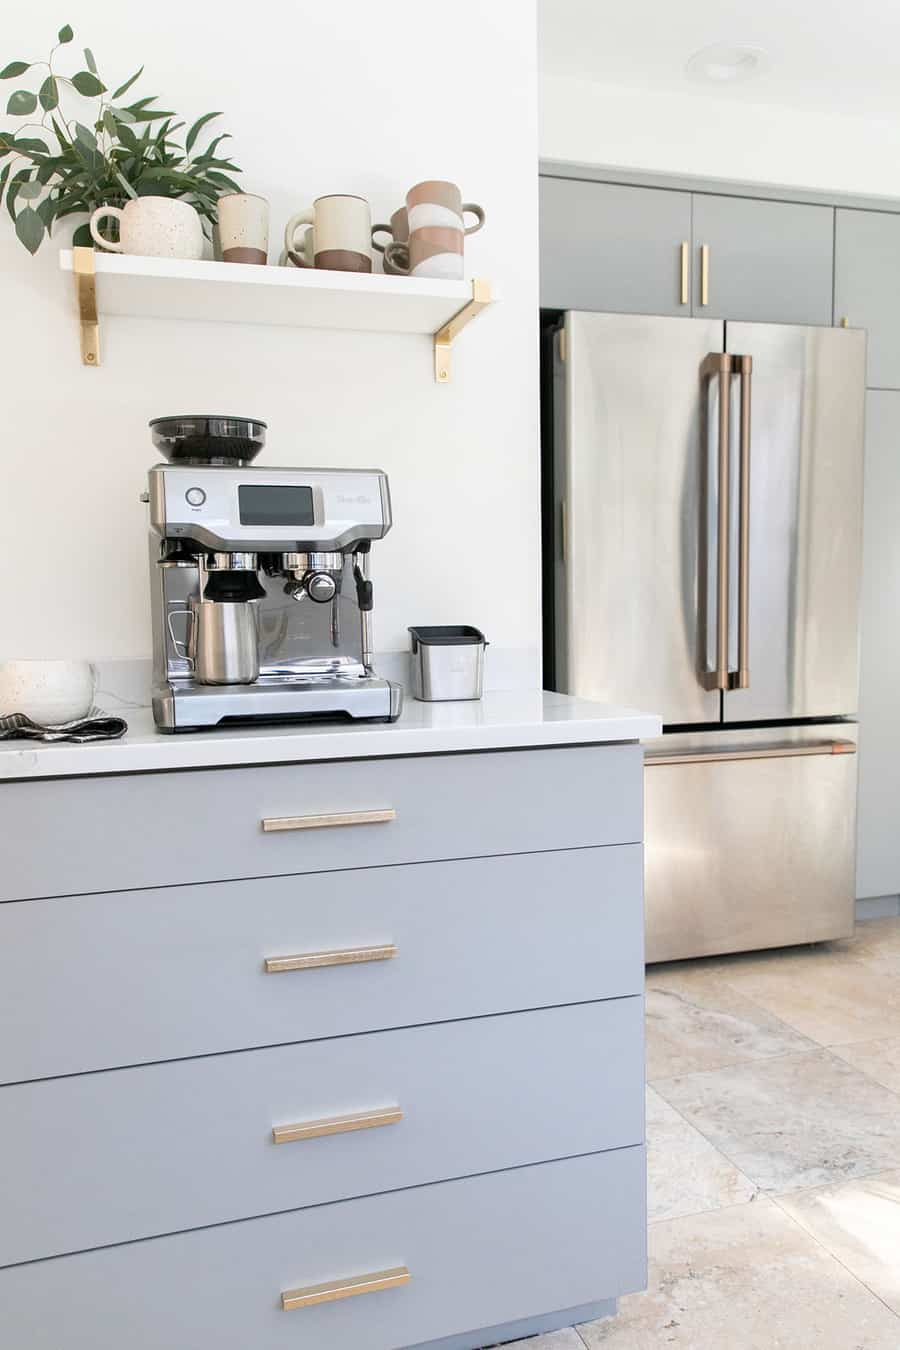 Gray kitchen cabins, gold pulls, cafe appliances and espresso maker